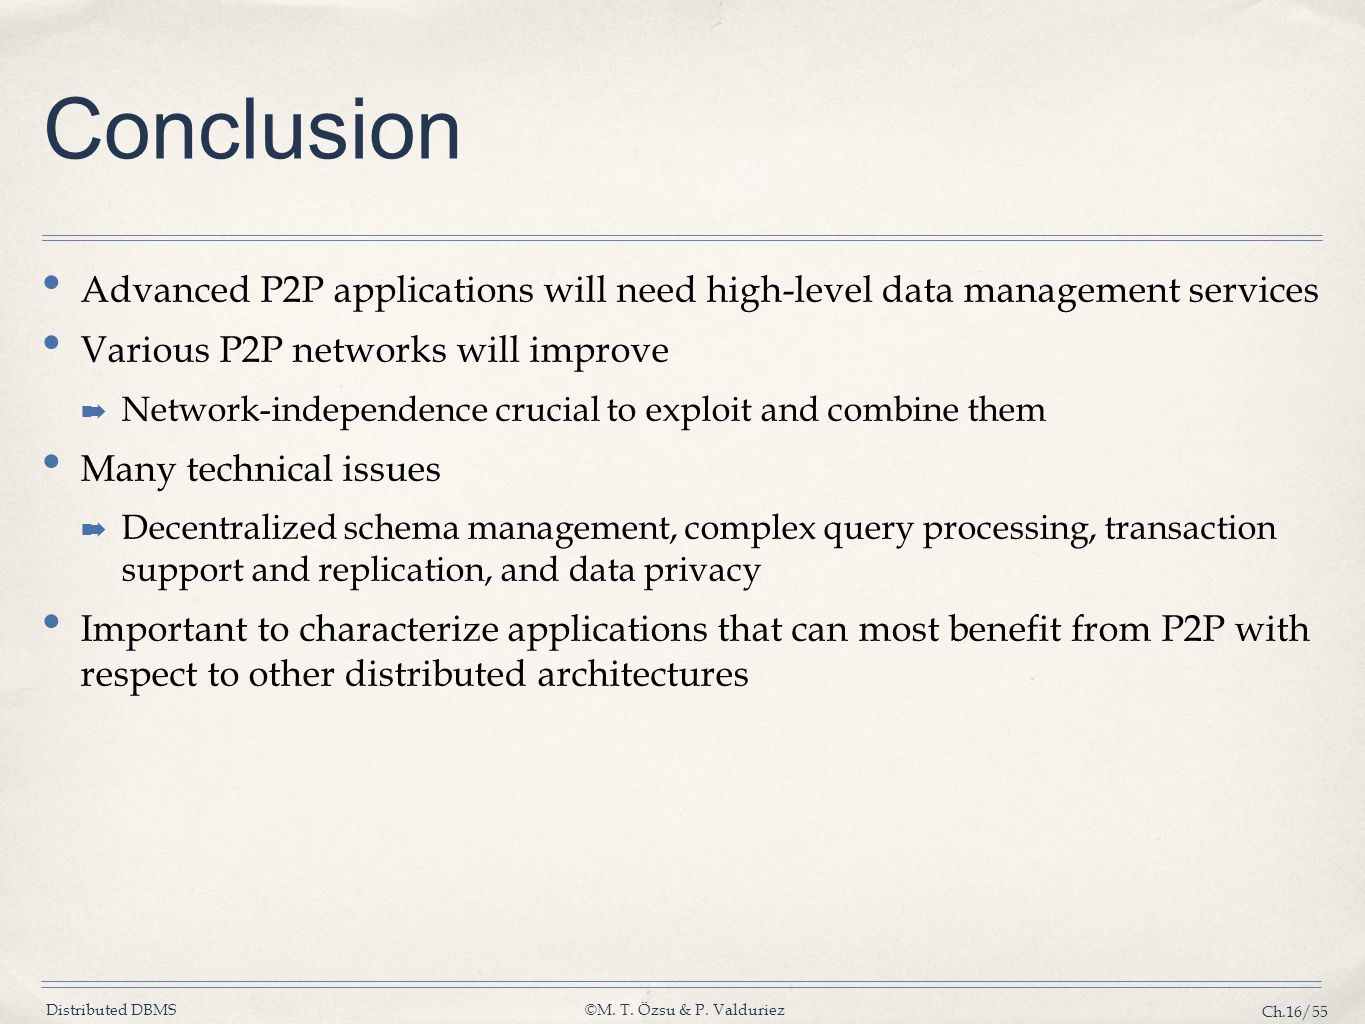 Conclusion Advanced P2P applications will need high-level data management services. Various P2P networks will improve.